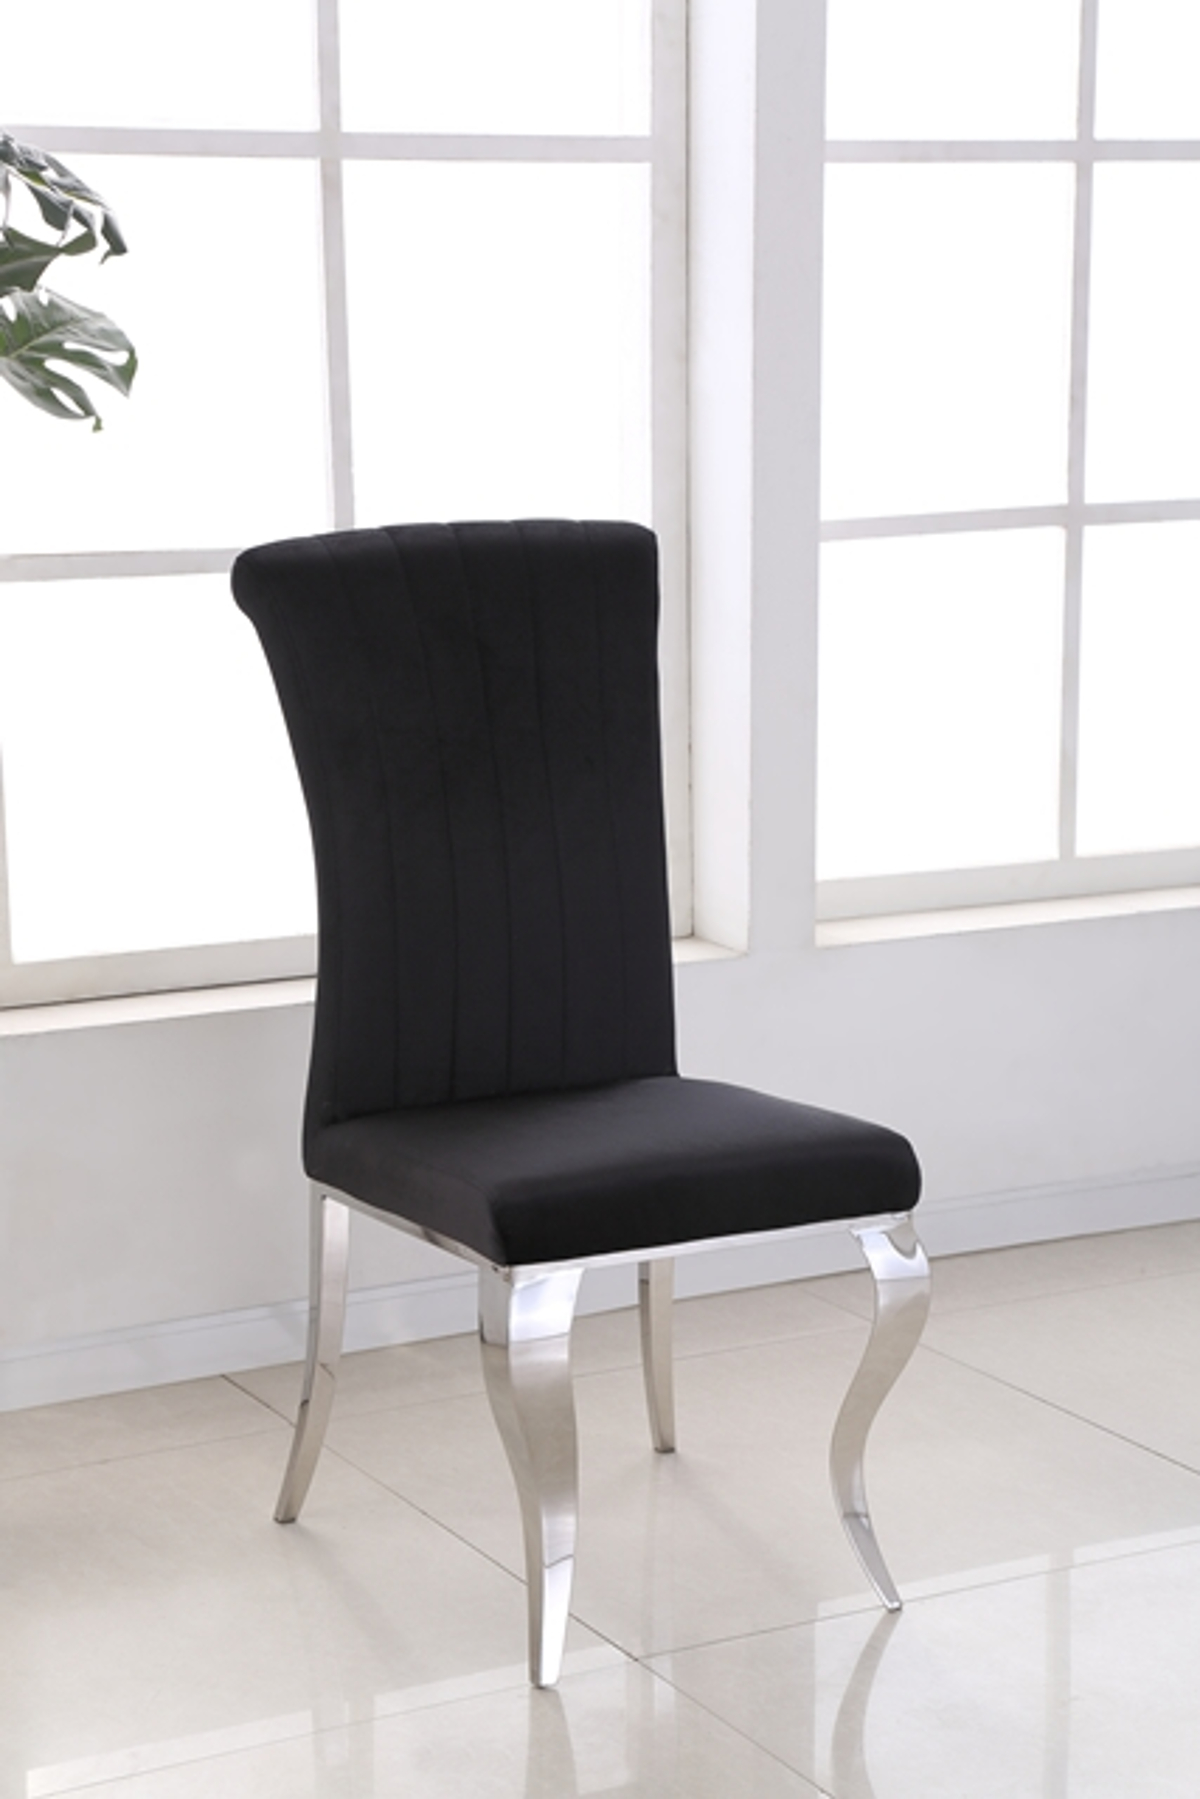 Dining Furniture in Liverpool Dining Tables& Dining Chairs Dining Sets P&A Furnishings